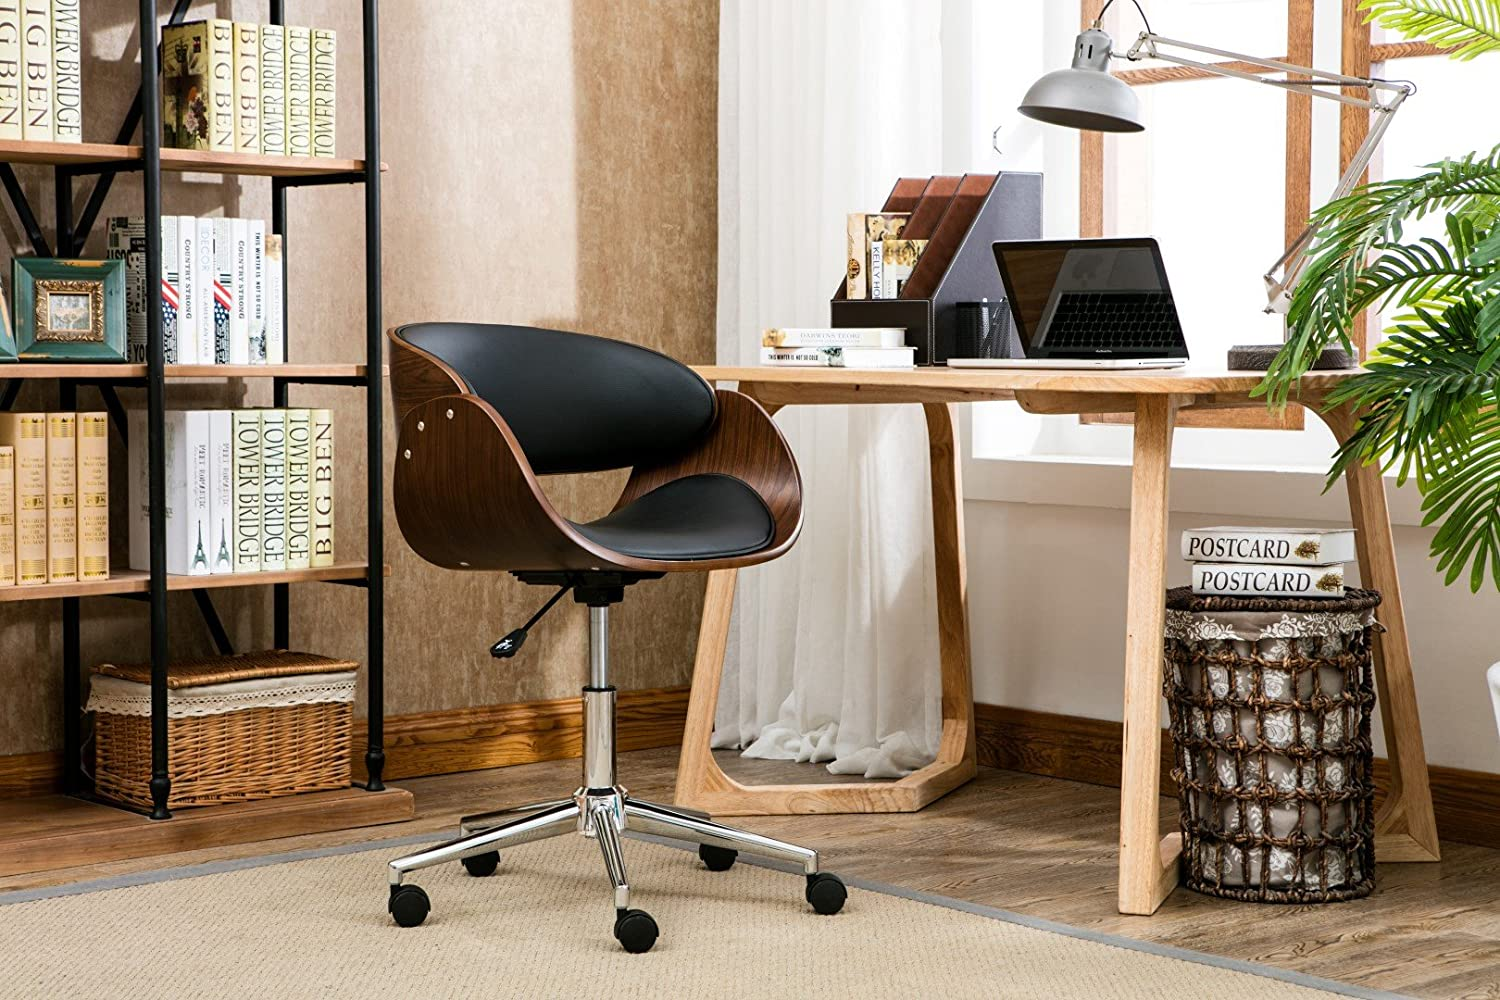 Porthos Home Monroe Mid Century Modern Chair With Curved Seat Back, Leather Upholstery, Adjustable Height, Stainless Steel Legs And 5 Castor Roller Wheels, One Size, Black